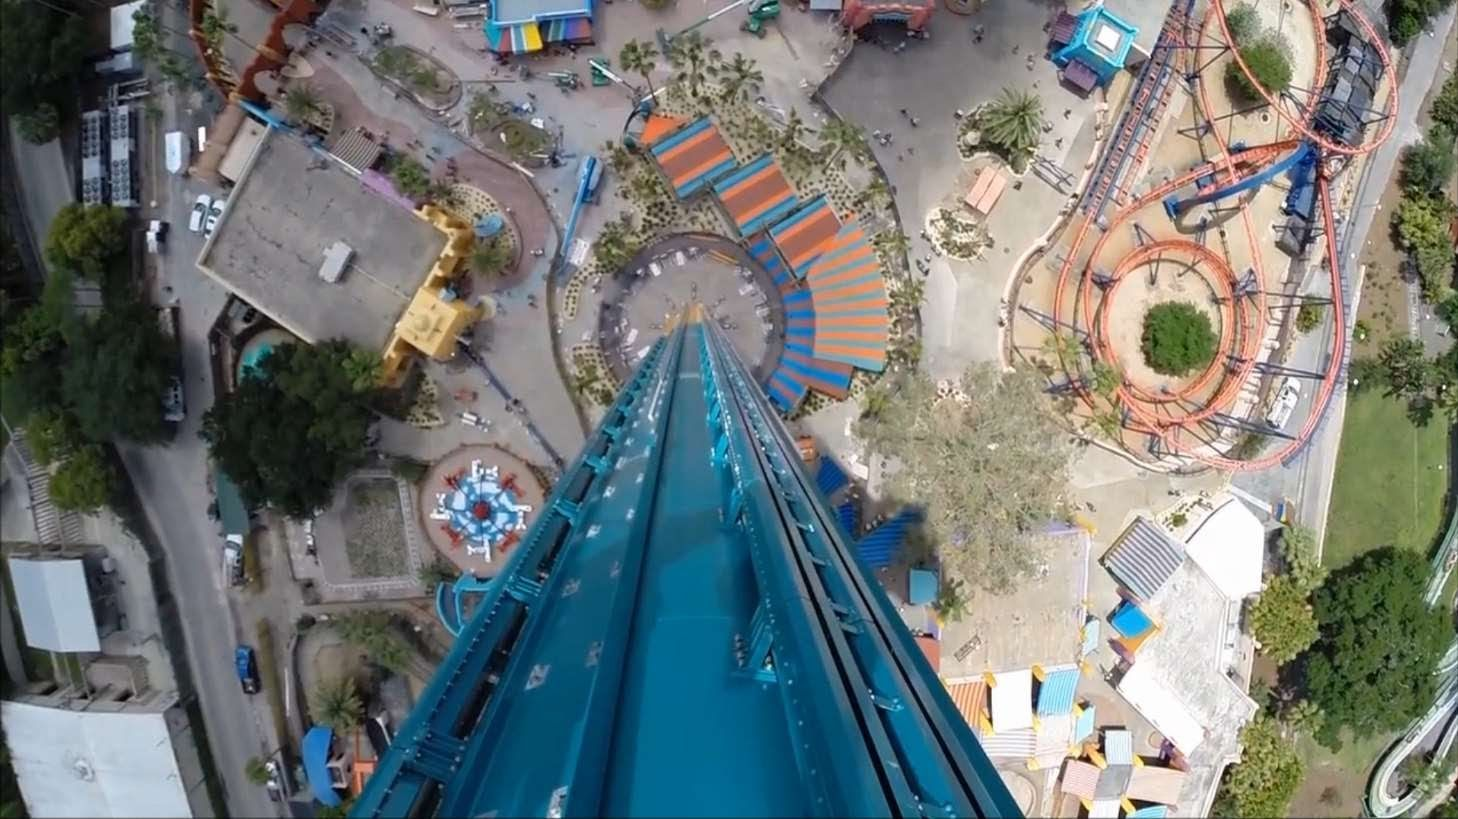 Falcon S Fury World S Tallest Drop Tower Ride To Open Soon At Busch Gardens Tampa Florida Can T Busch Gardens Tampa Busch Gardens Busch Gardens Tampa Bay